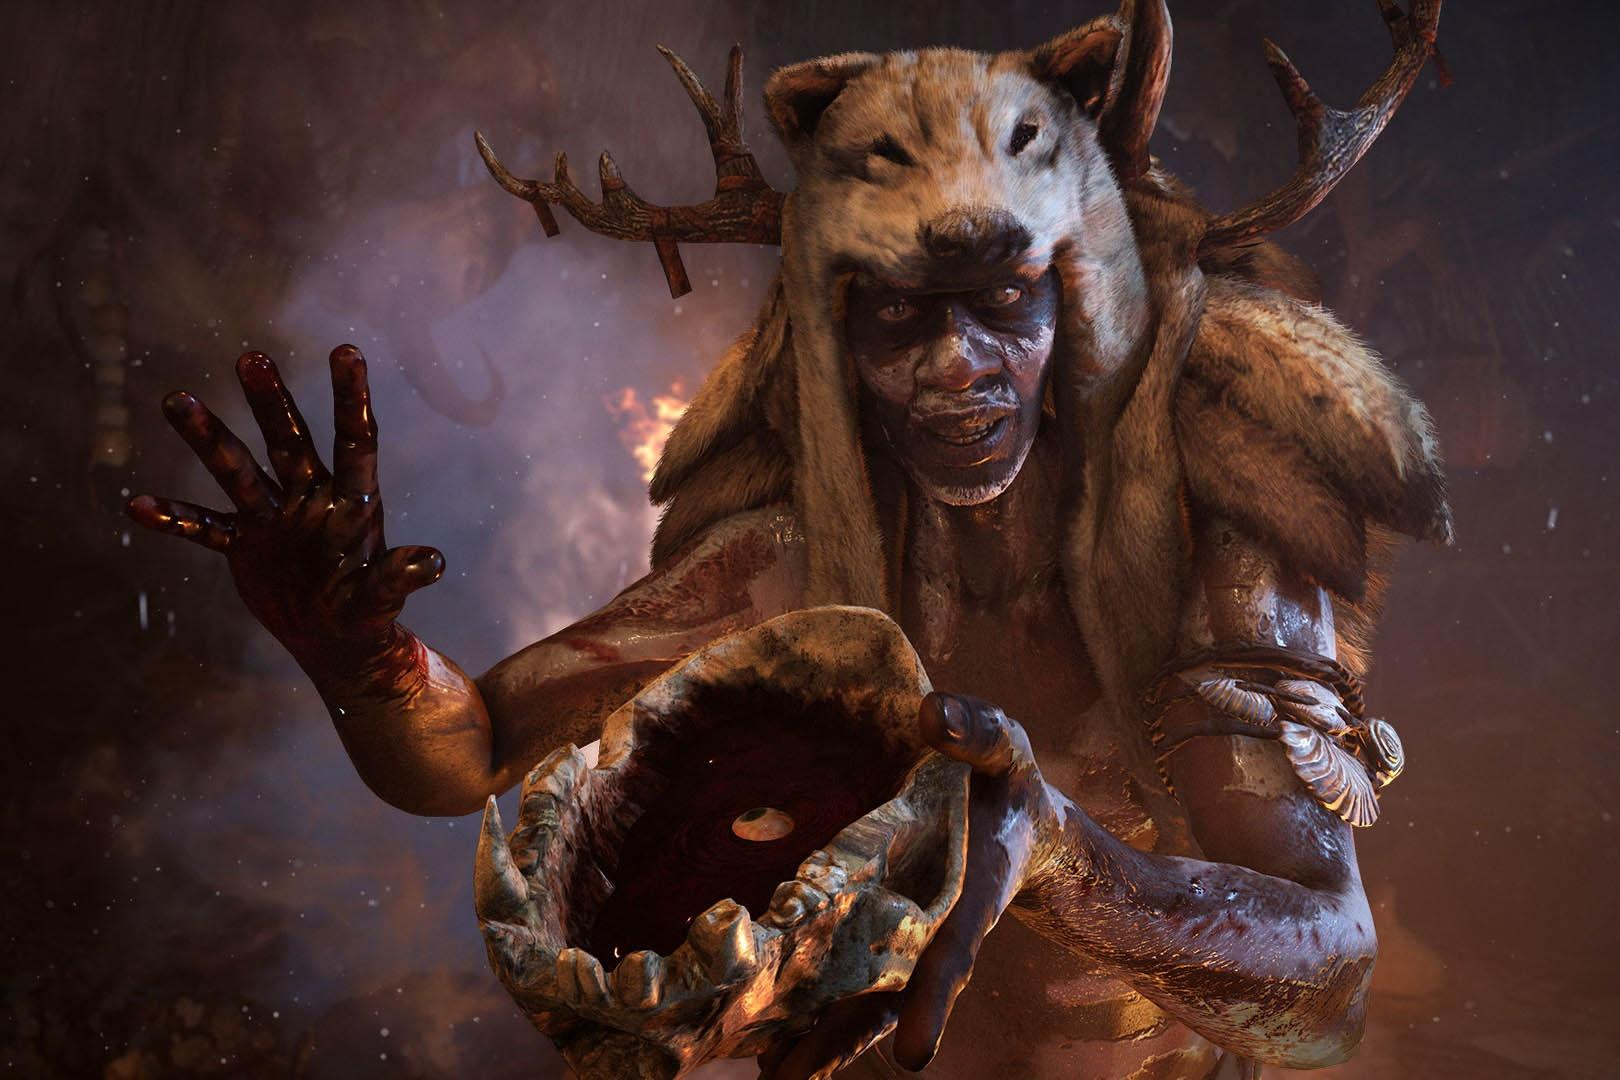 Far Cry Primal developers discuss what makes the game true to the series